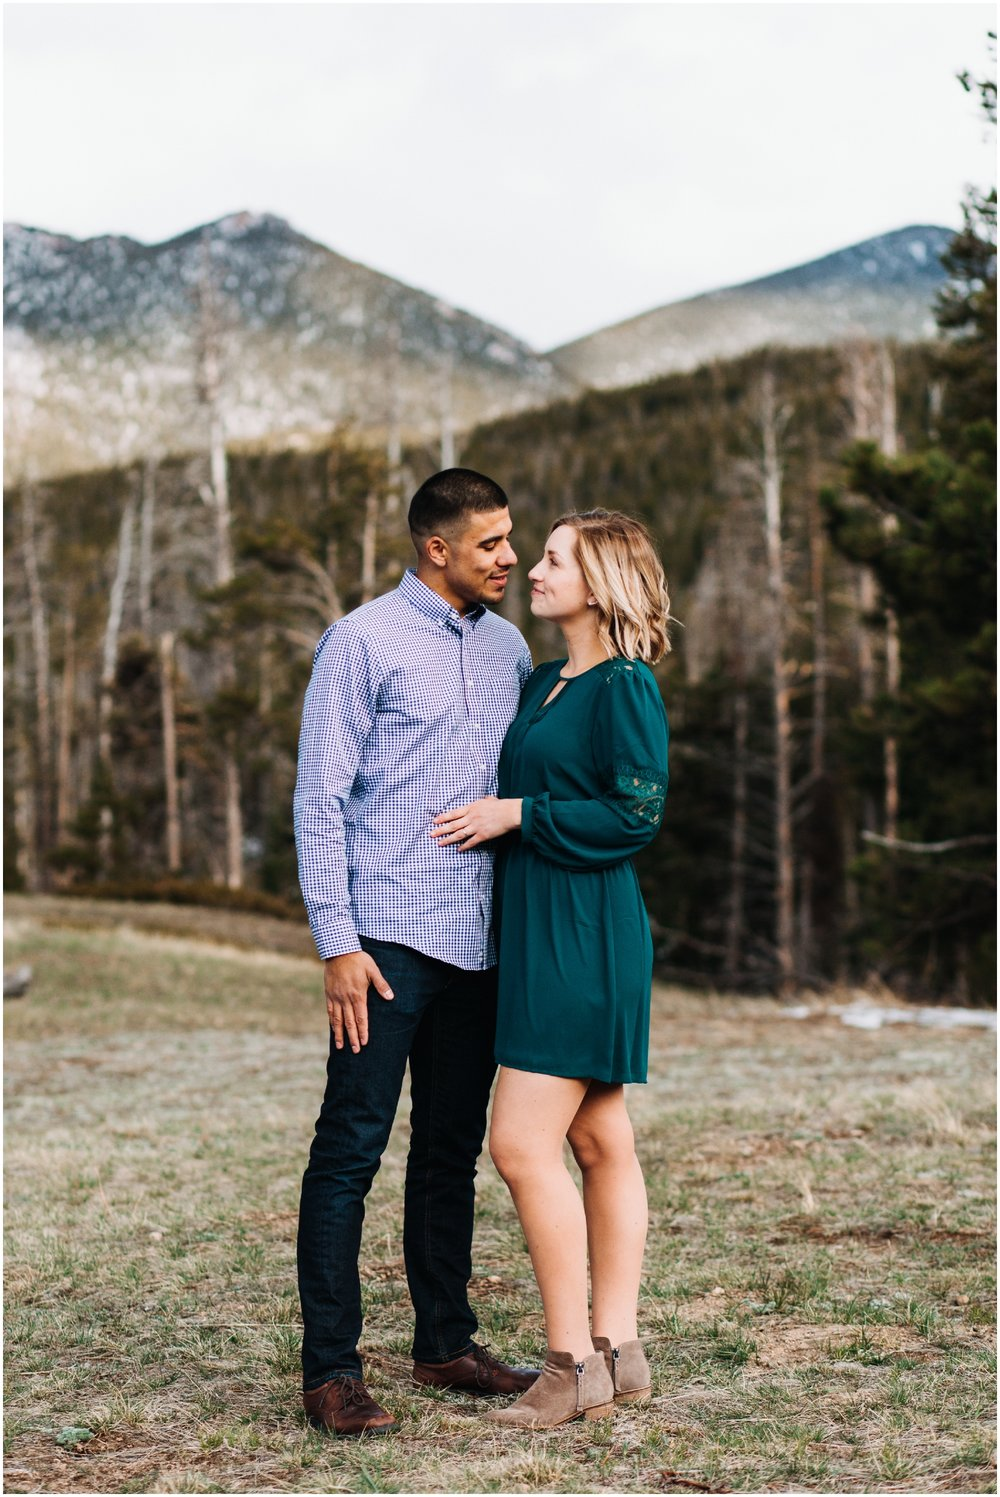 rocky-mountain-national-park-elopement-sprague-lake-colorado-adventure-wedding-photographer_taylor-powers_115.jpg